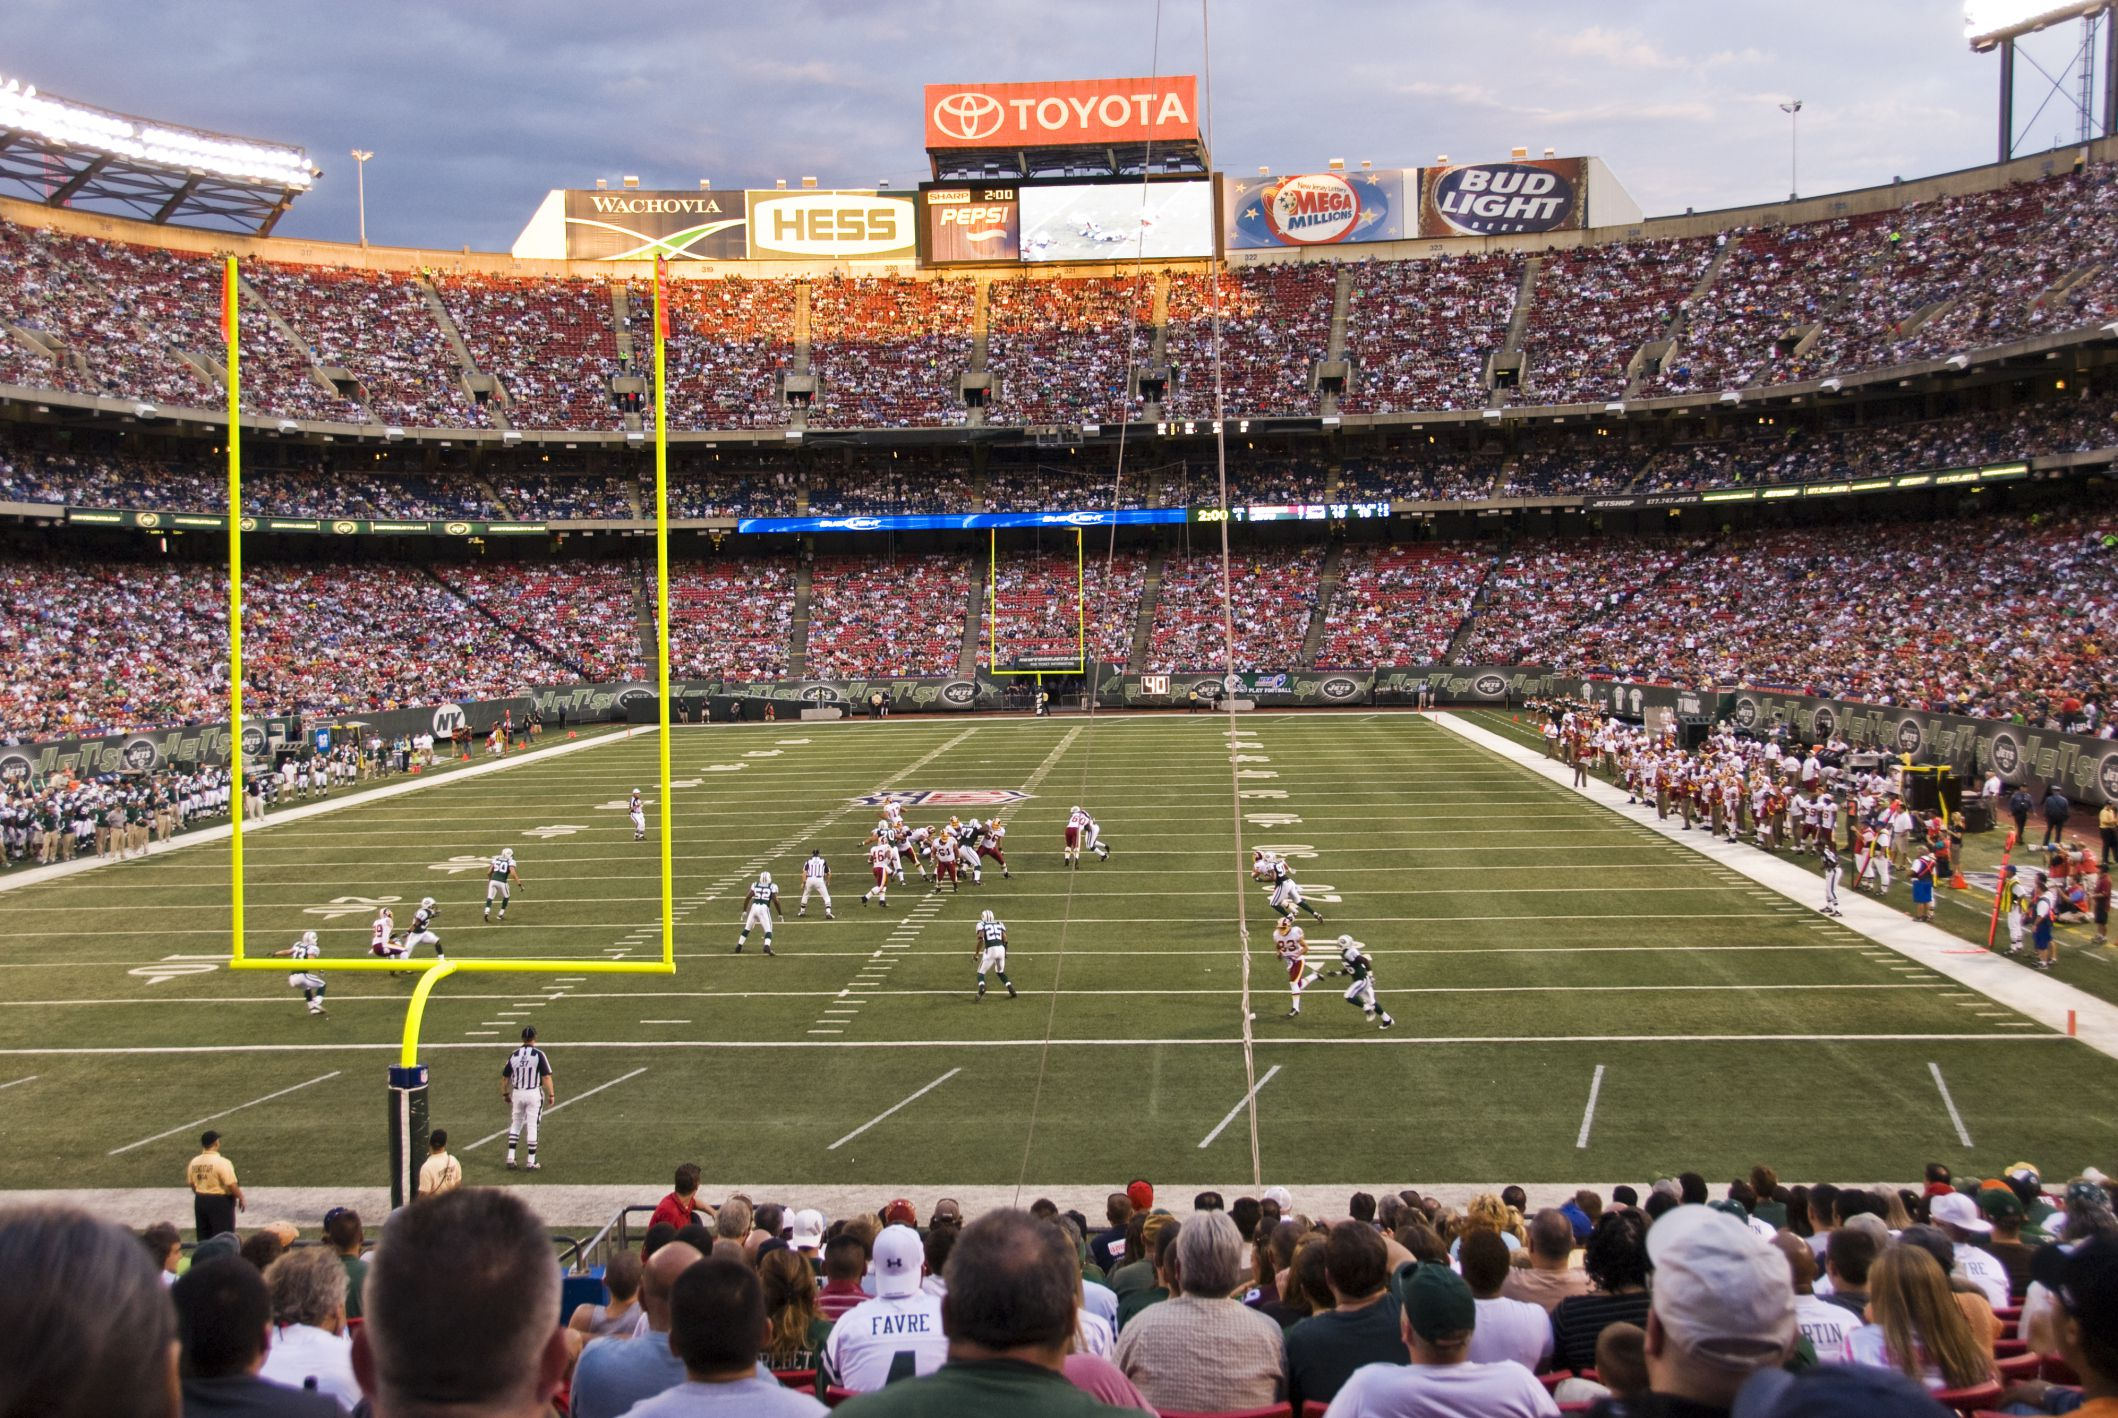 New York Jets playing Washington, DC Redskins in pro football game at Giants Stadium, New Jersey.